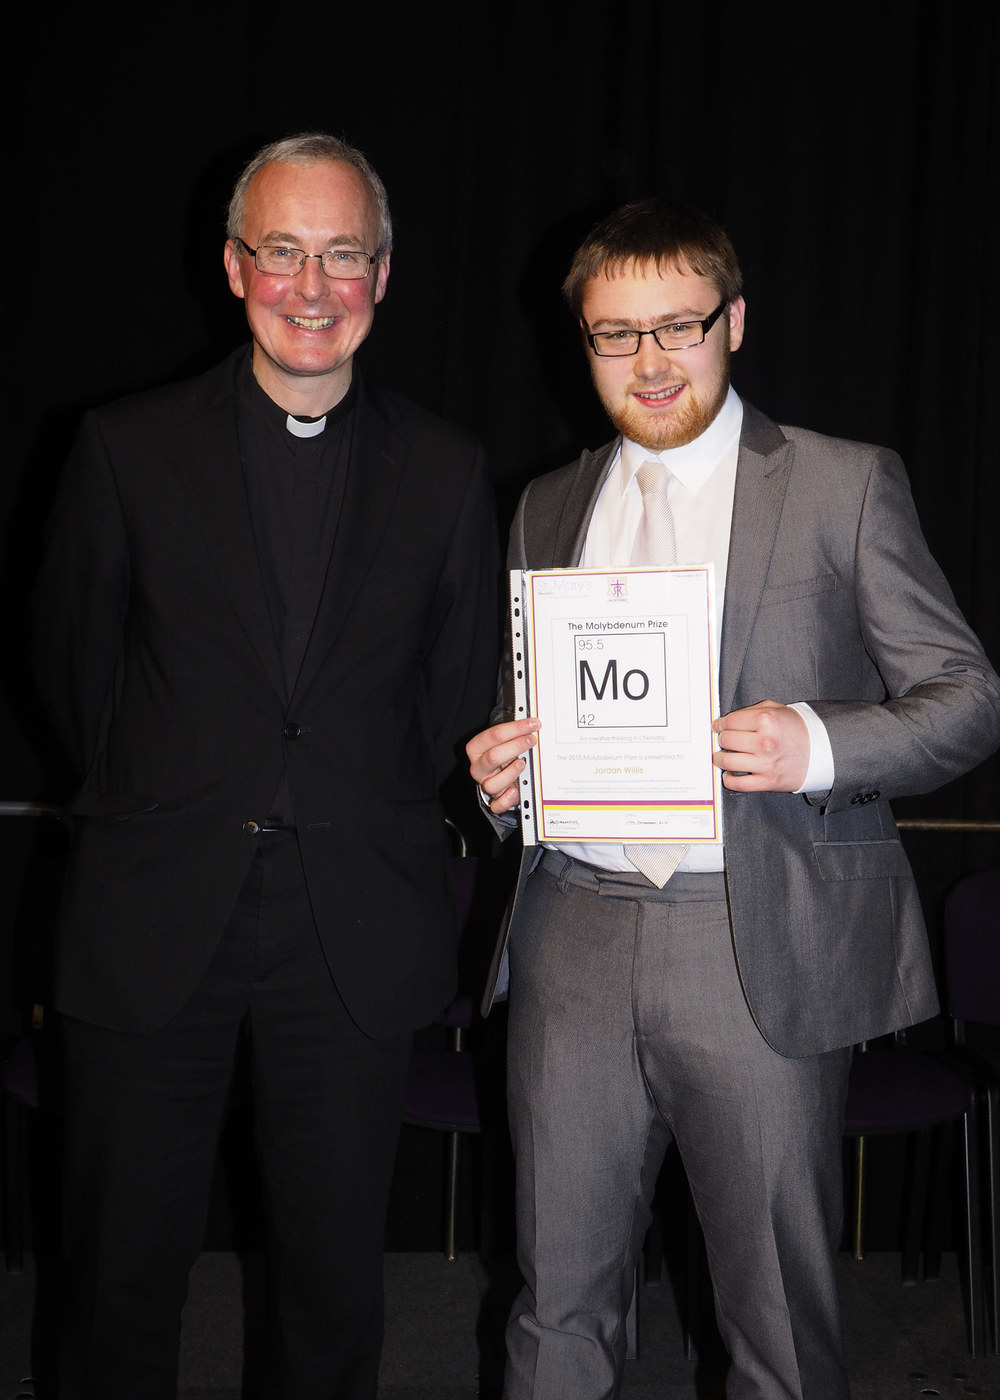 Photo: Former St. Mary's Menston pupil Monsignor Paul Grogan with Jordan Willis, Year 13 Presentation Evening, 17 December 2015